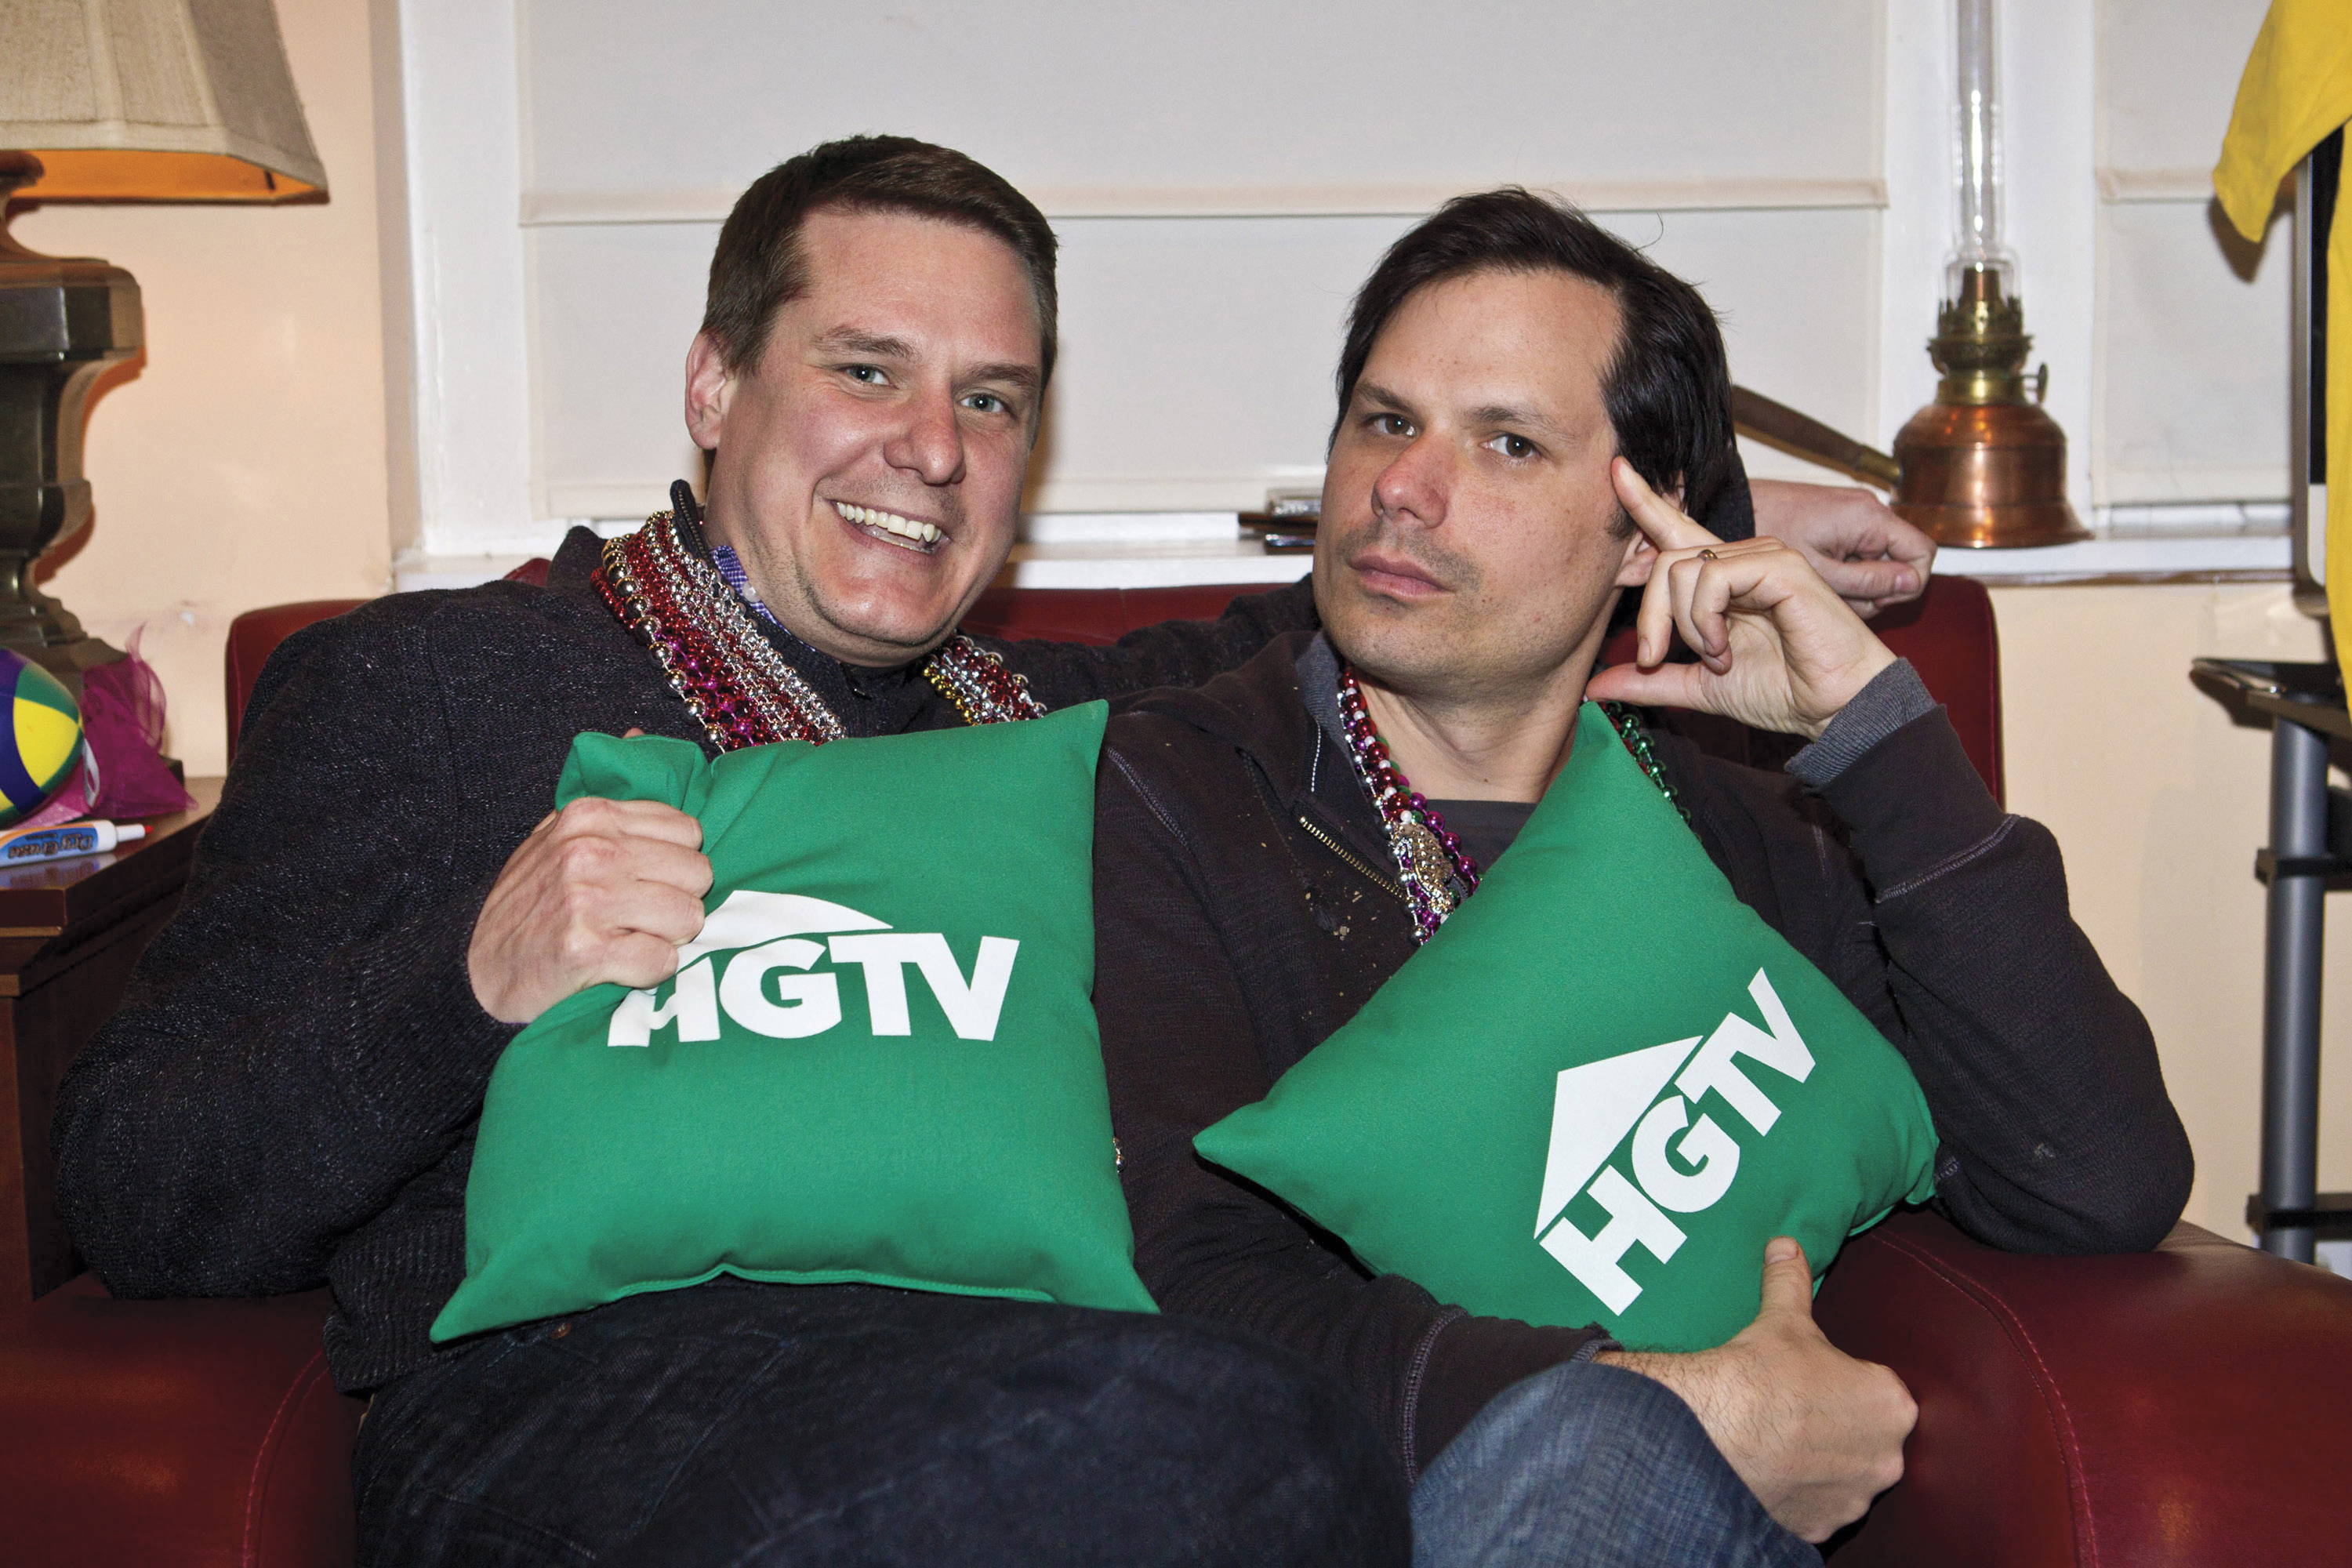 Hgtv Michael Ian Black